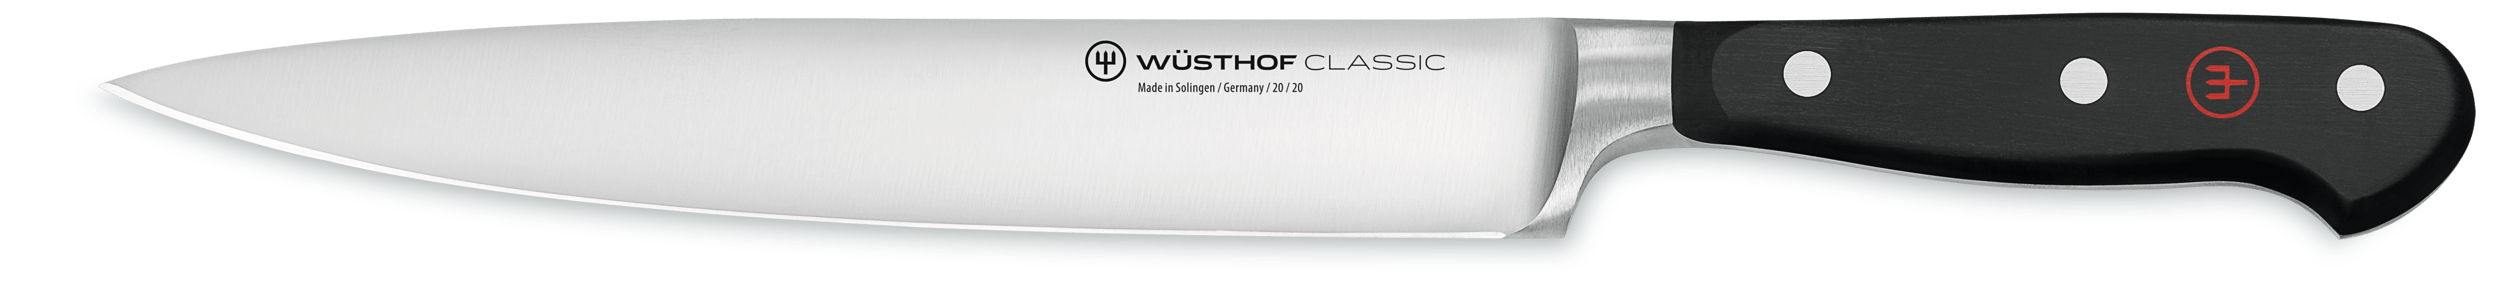 New Wüsthof Classic Carving Knife 20cm 1040100720